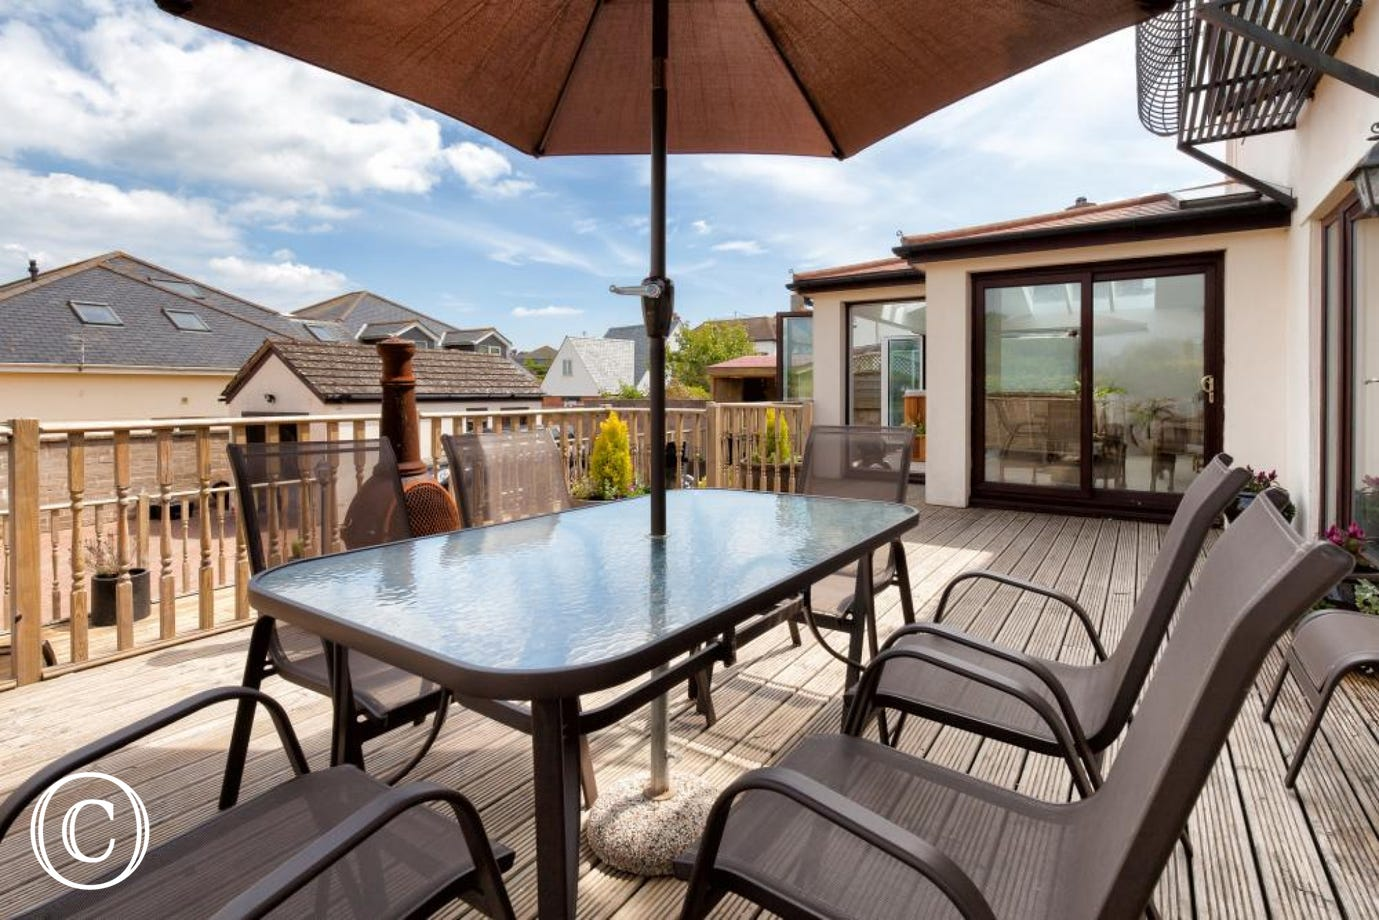 Enjoy Relaxing in the Sun, or Al Fresco Dining on the Deck!